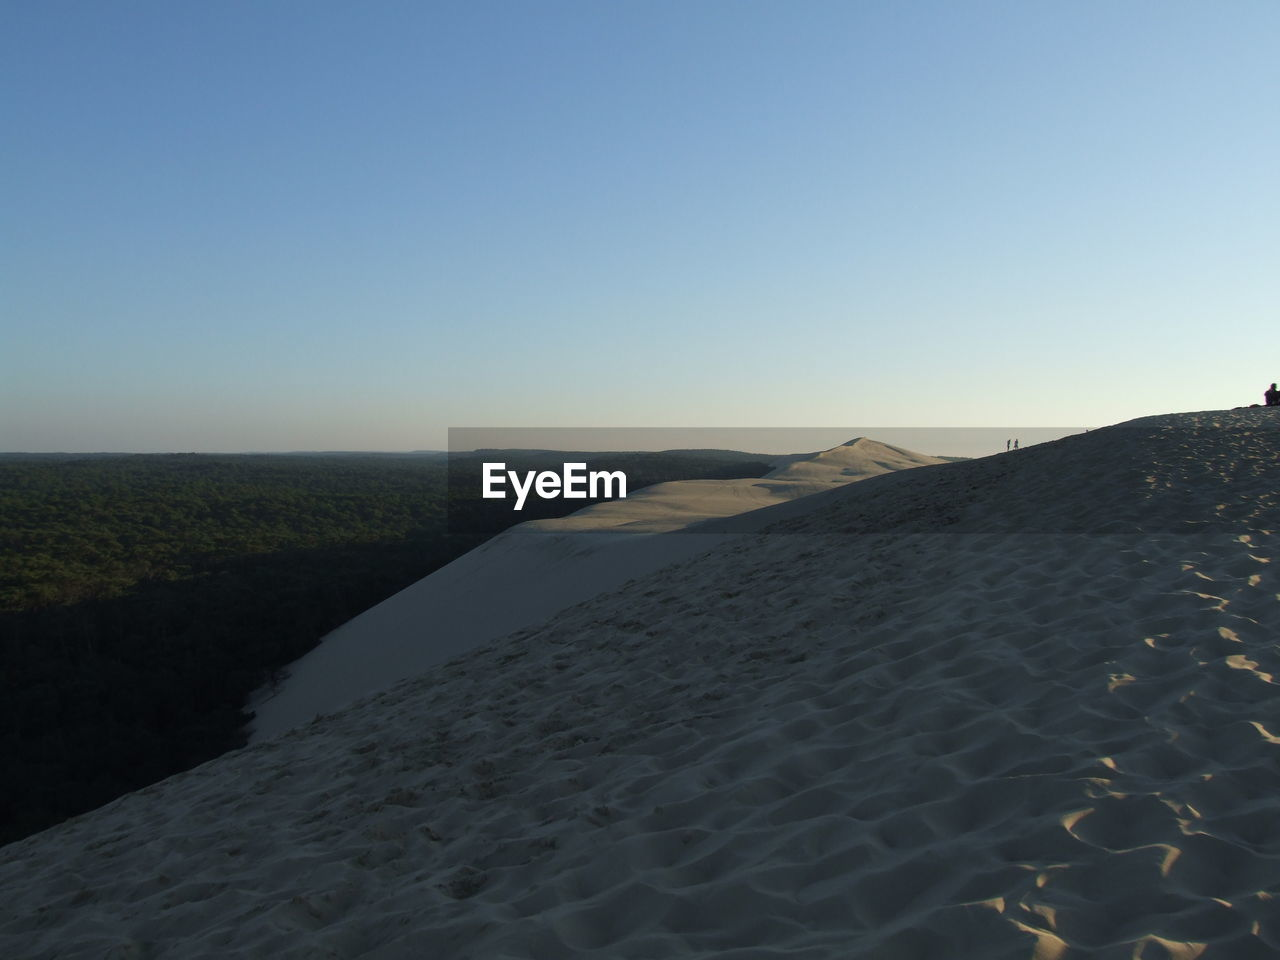 nature, clear sky, tranquility, tranquil scene, sand, scenics, copy space, beach, outdoors, beauty in nature, no people, water, sea, day, sky, landscape, sand dune